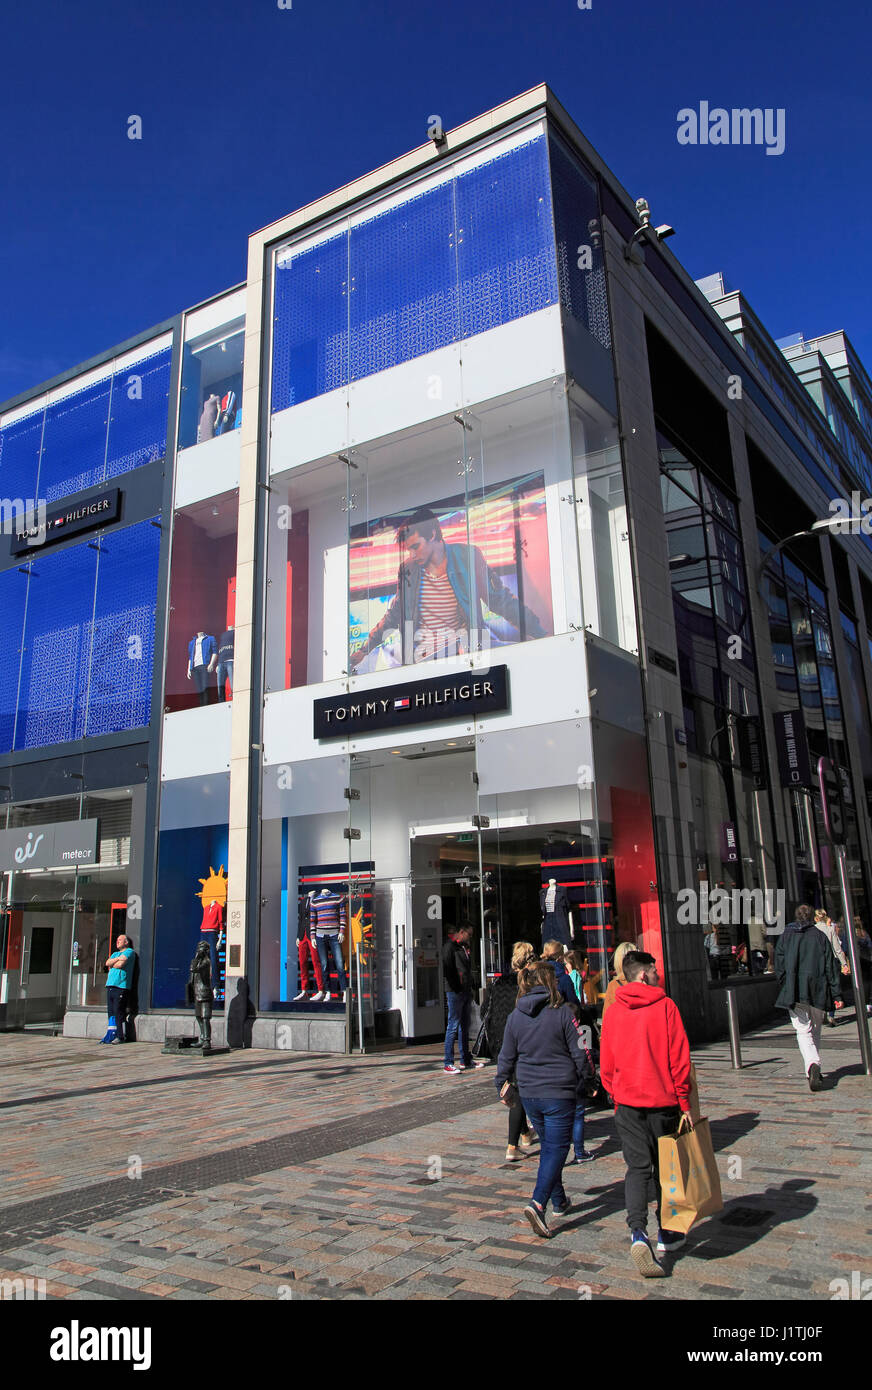 dormire acciaio Uomo  Tommy Hilfiger shop, St Patrick's Street, City of Cork, County Cork Stock  Photo - Alamy